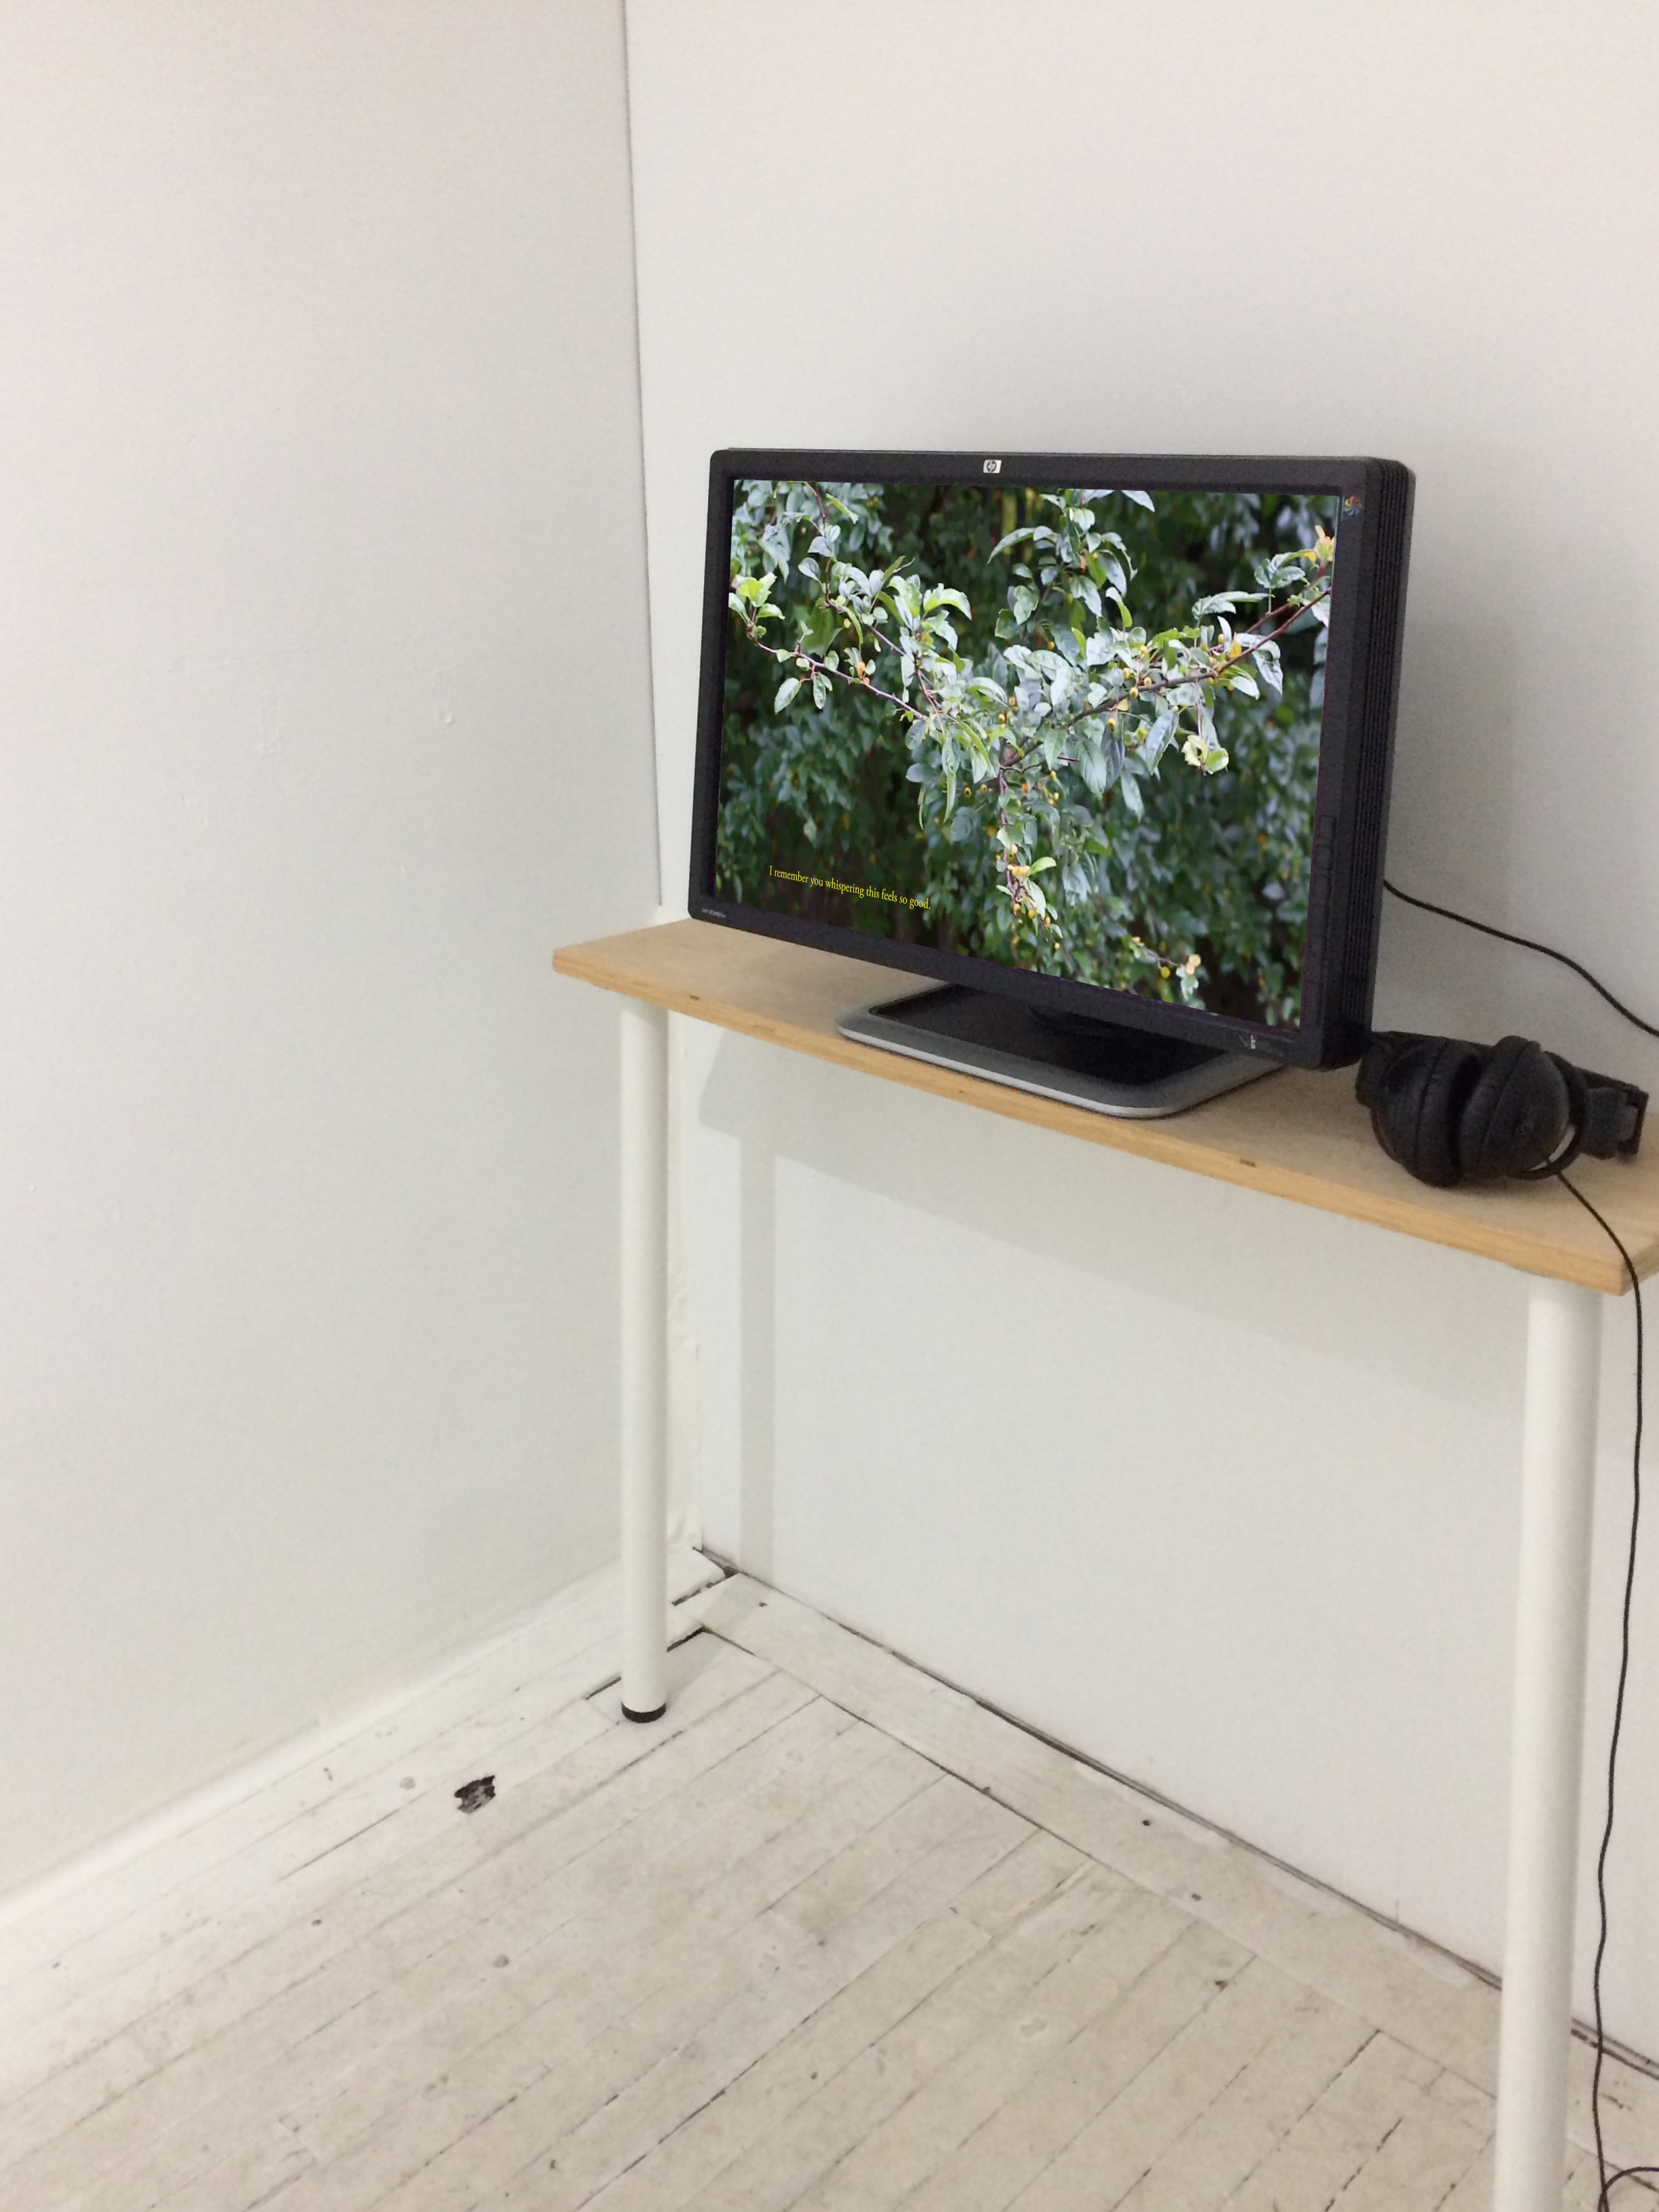 Installation view of Rindon Johnson's  re: hello from the other side  (2017). Image courtesy of Open Projects.